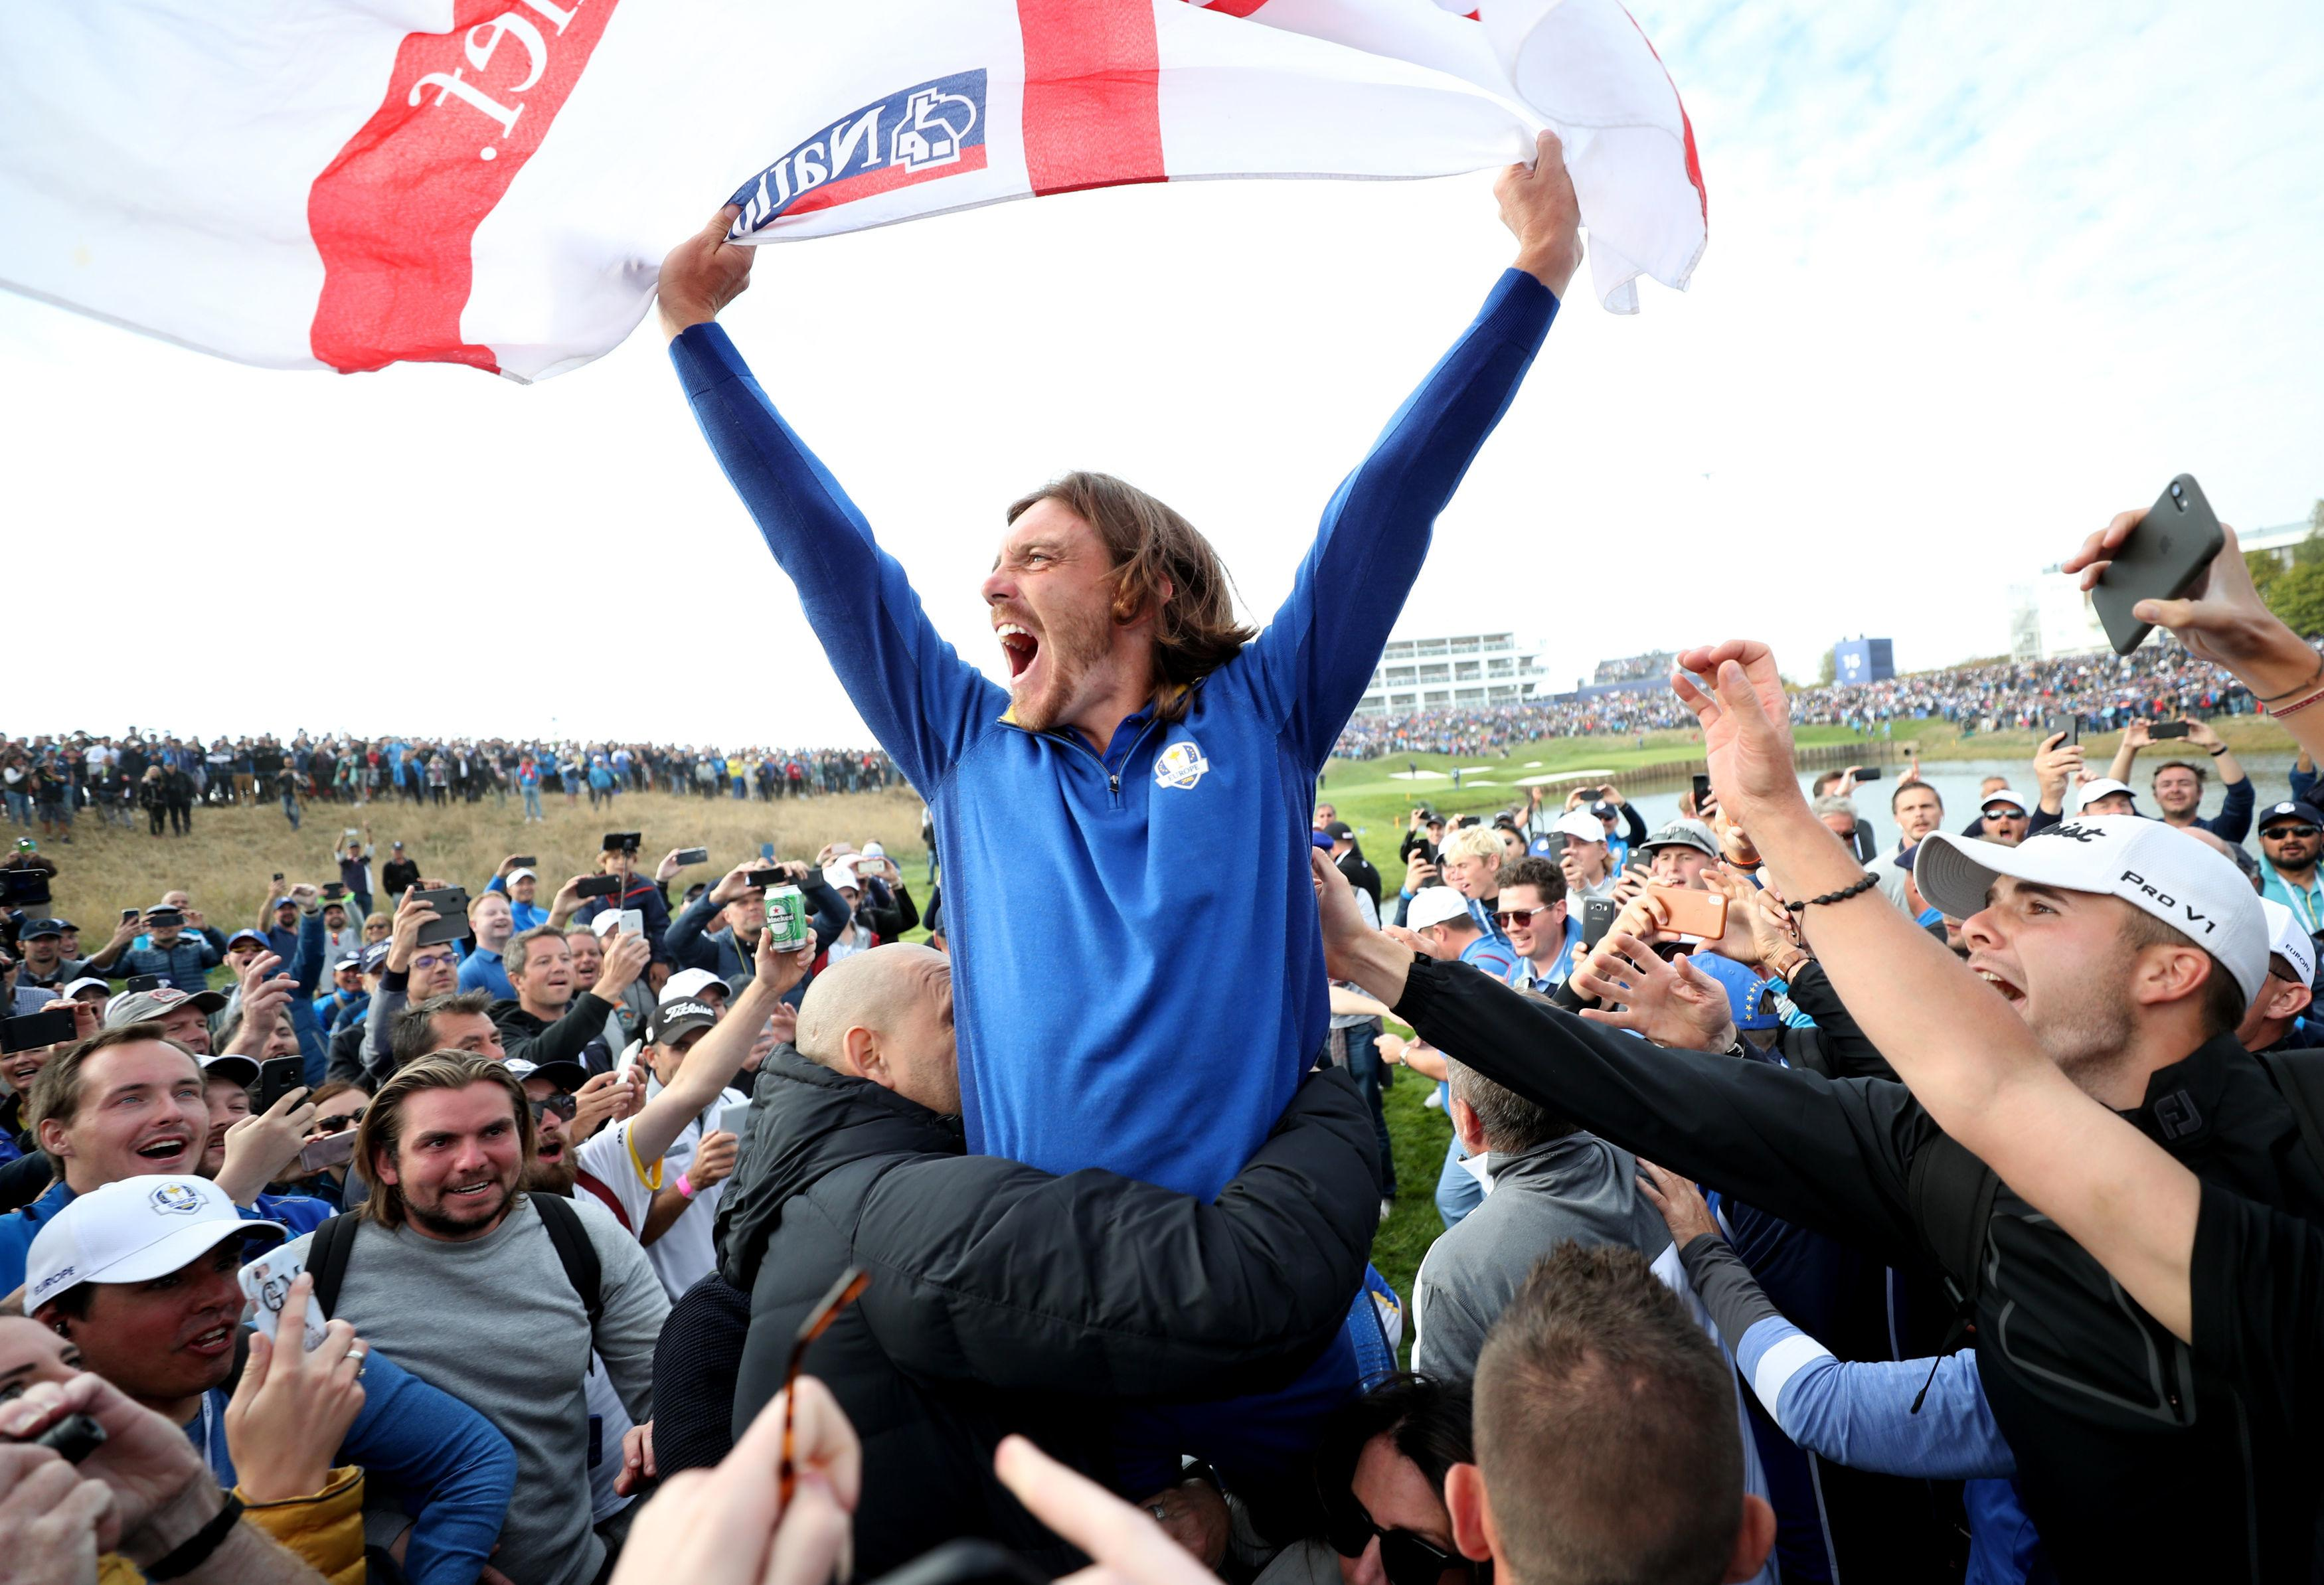 Tommy Fleetwood couldn't contain his excitement after the win